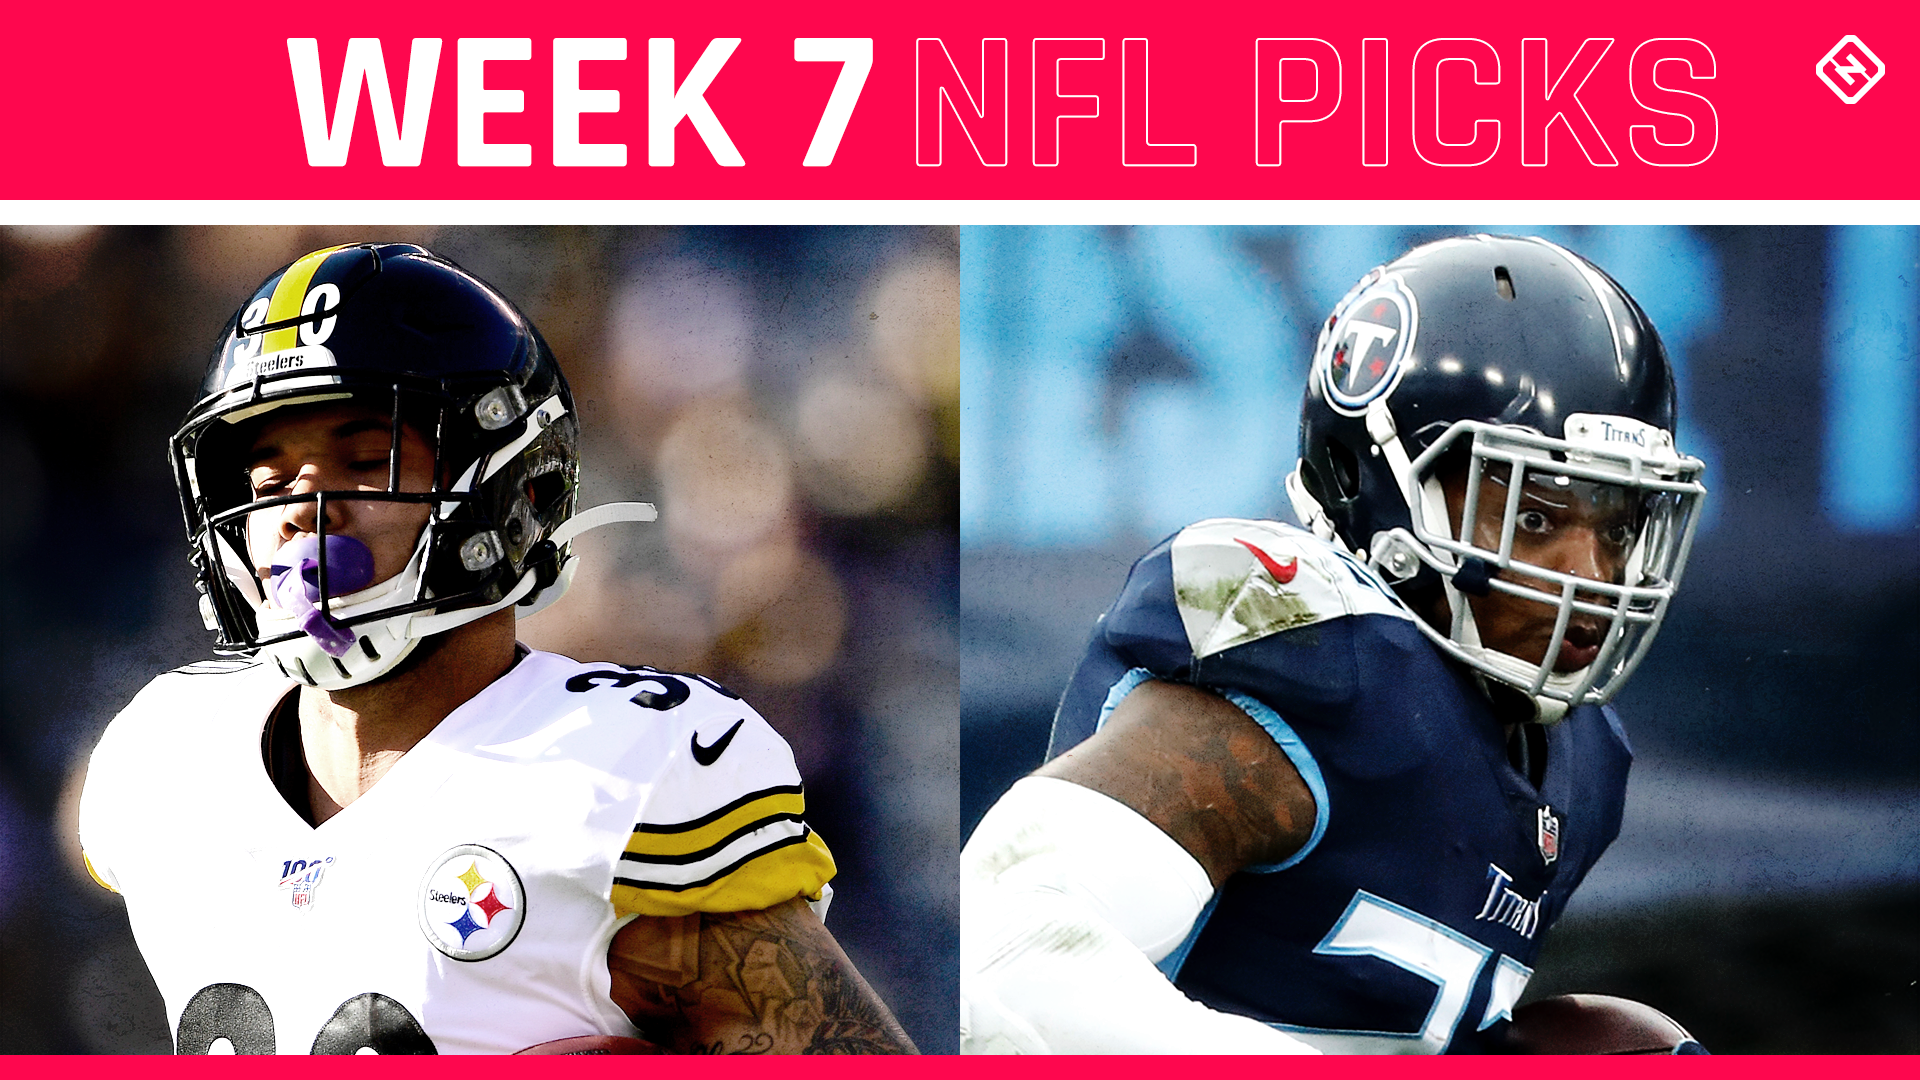 NFL picks, predictions for Week 7: Seahawks silence Cardinals; Titans edge Steelers; Bears stay hot